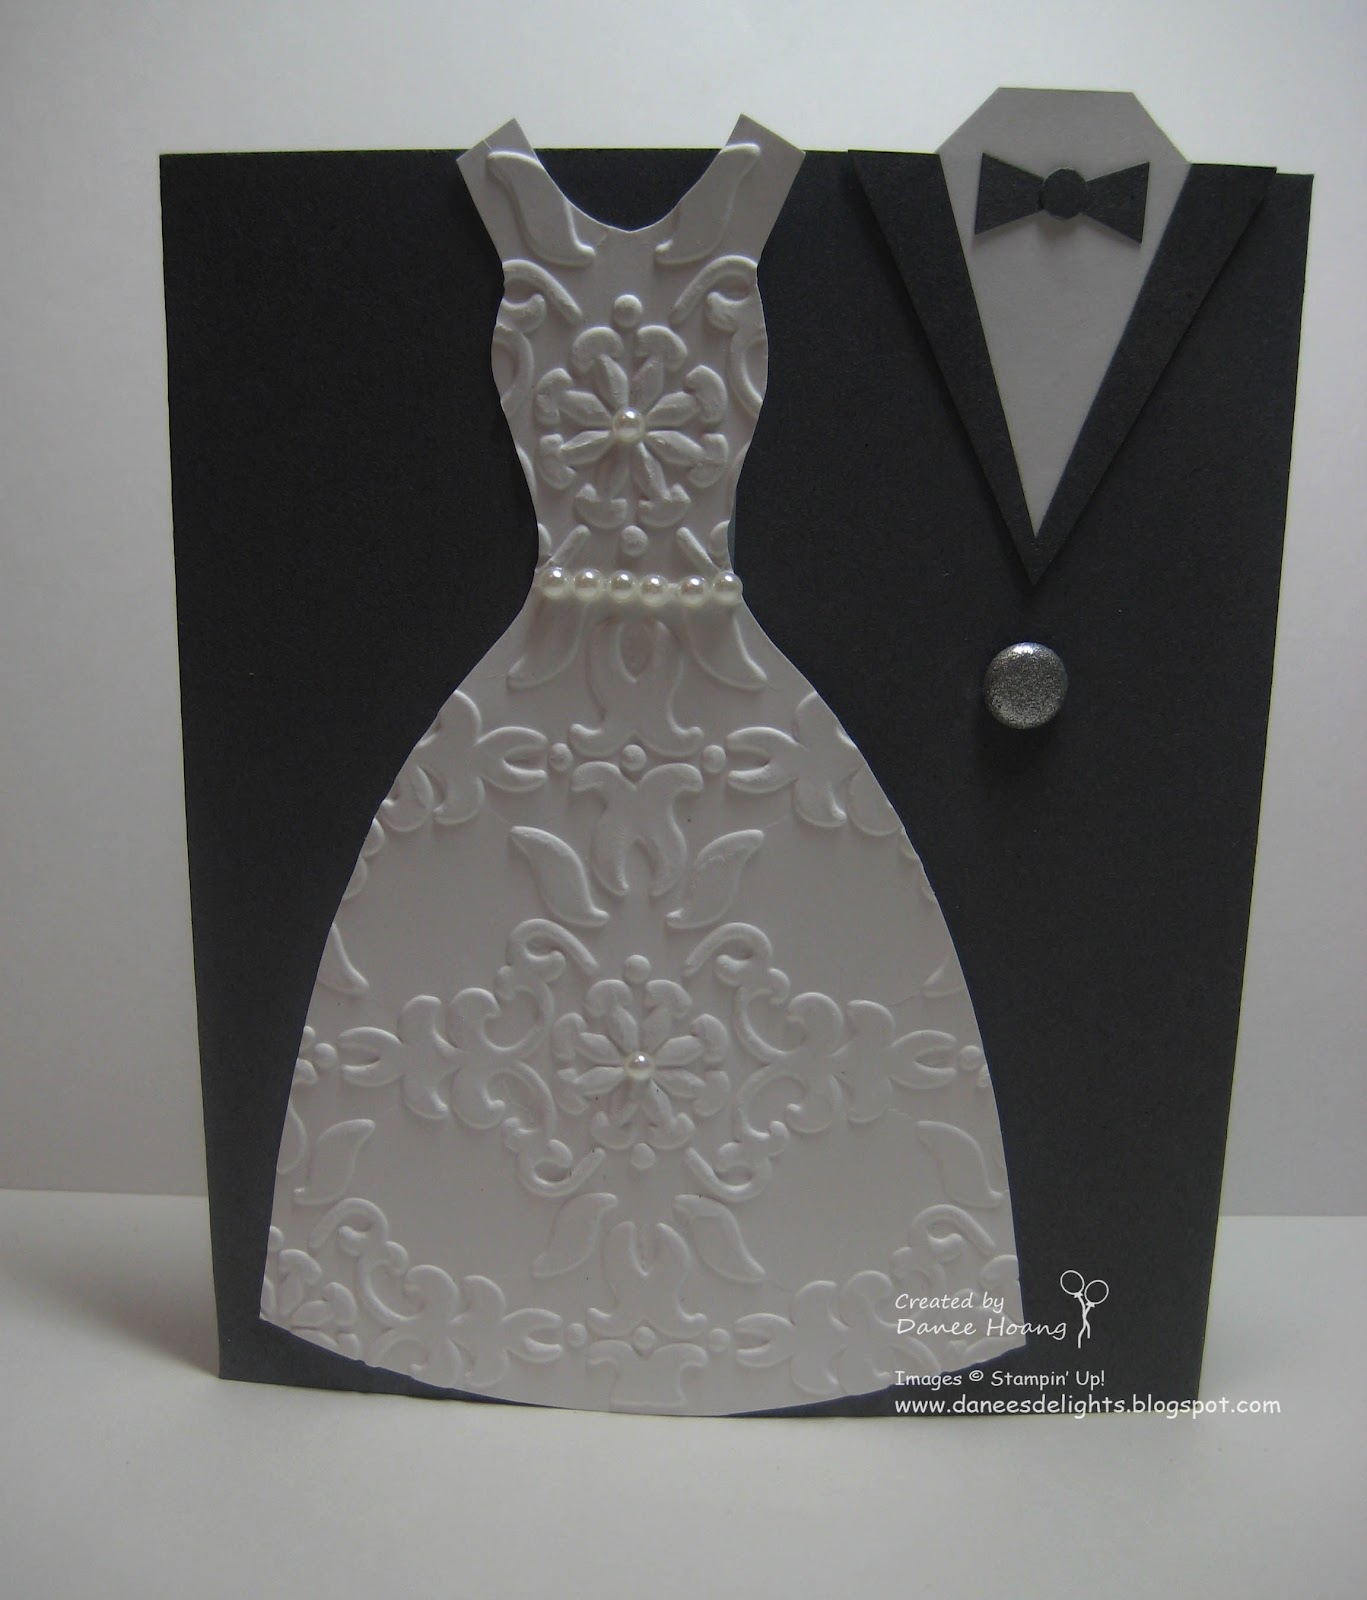 Bride And Groom Only Wedding Ideas: Danee's Stampin' Delights: Bride And Groom Wedding Card